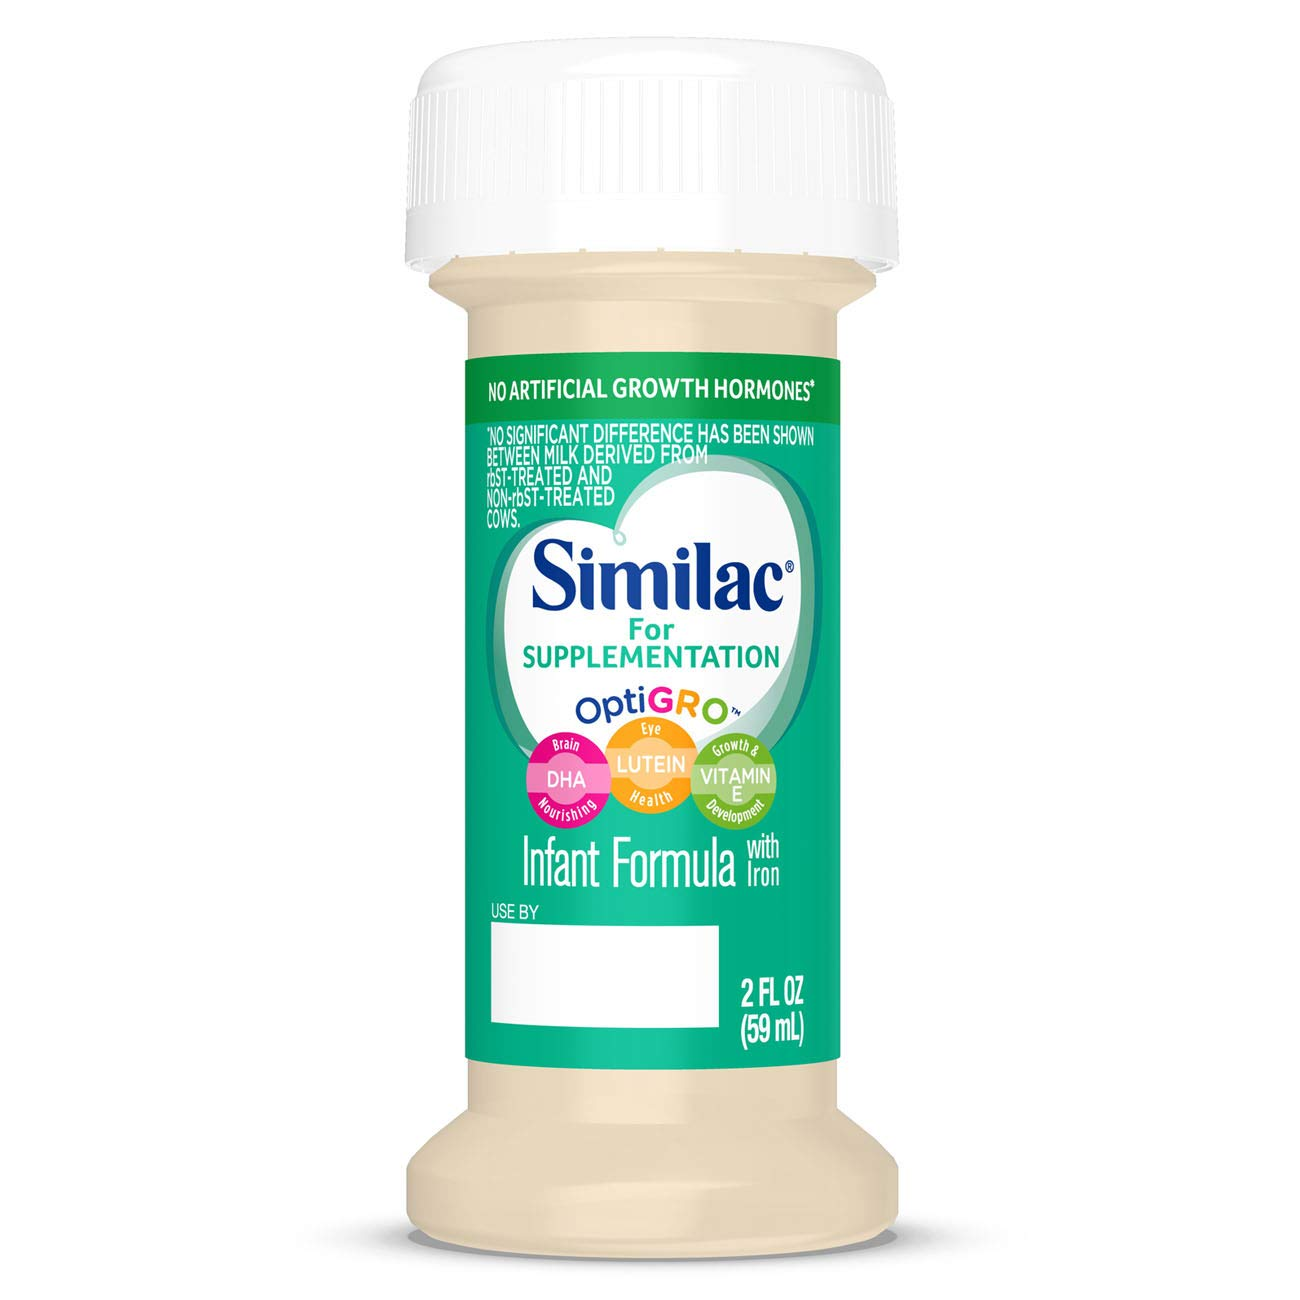 Similac For Supplementation Infant Formula with Iron, Ready-to-Feed Bottles, 2 Ounce, (48 ct) by Similac (Image #1)